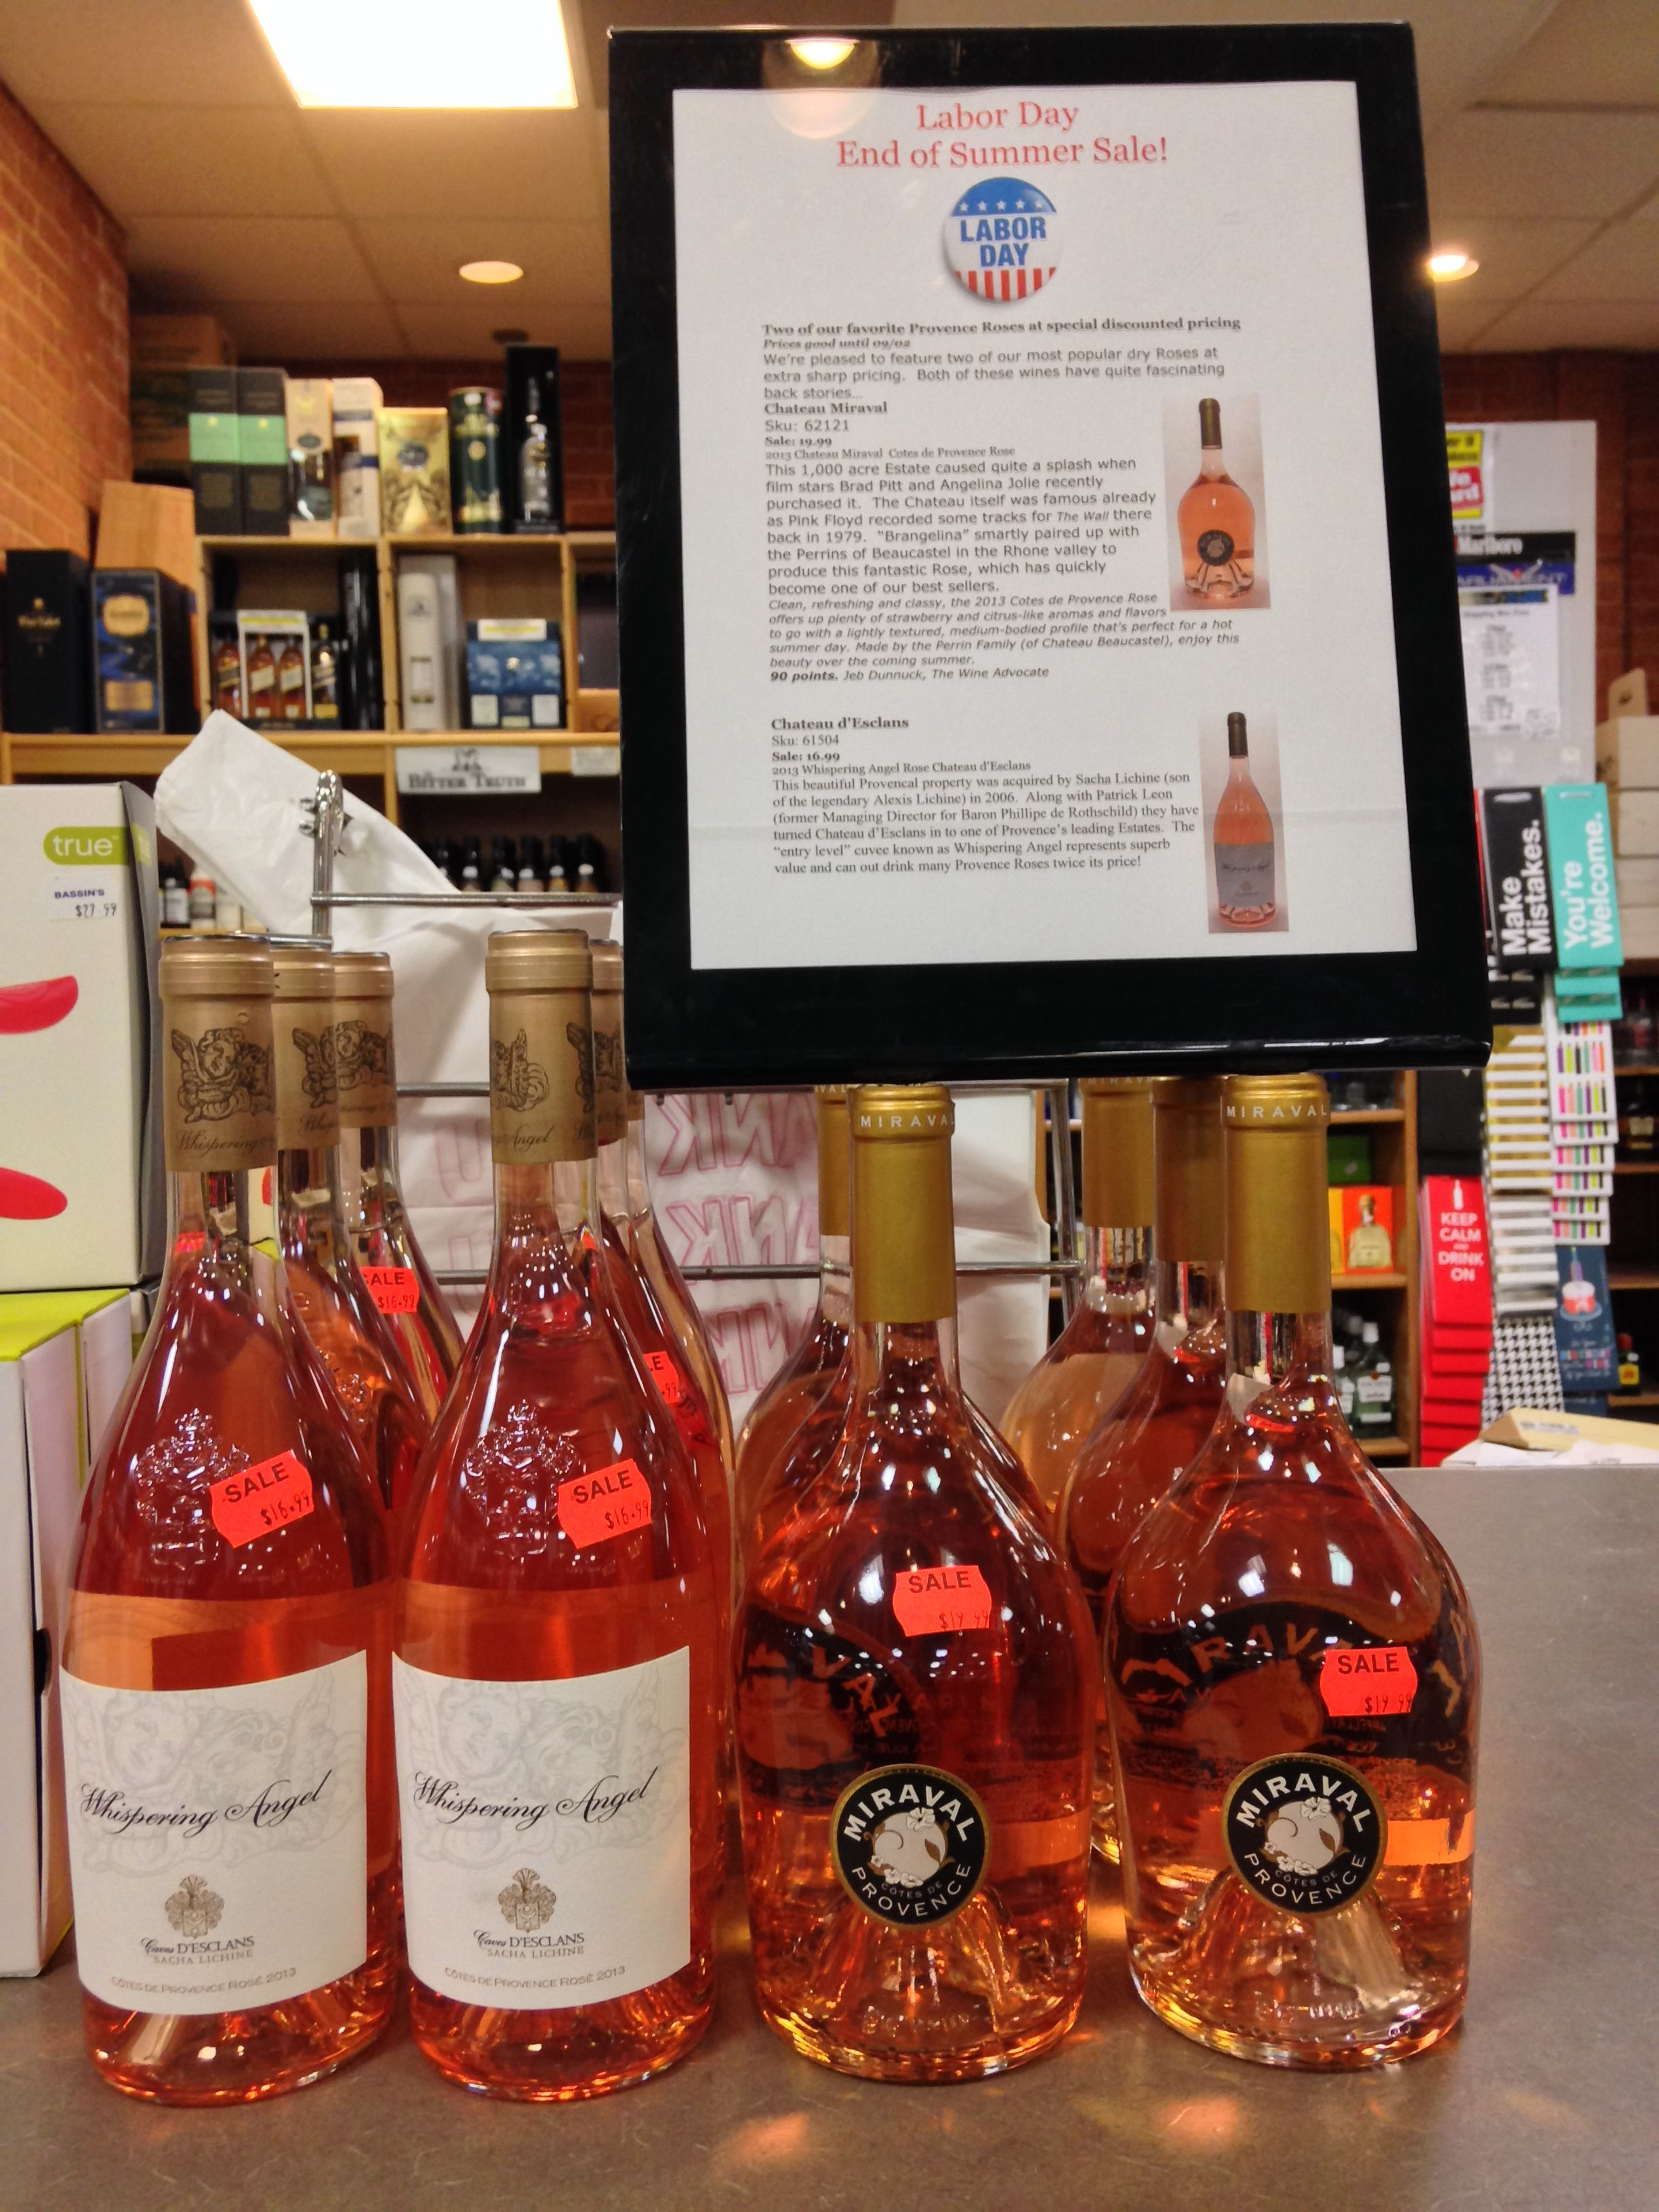 Labor Day End Of Summer Sale Two Of Our Favorite Provence Roses At Special Discounted Pricing Prices Good Until 09 02 We Re P Wines Summer Sale Drying Roses